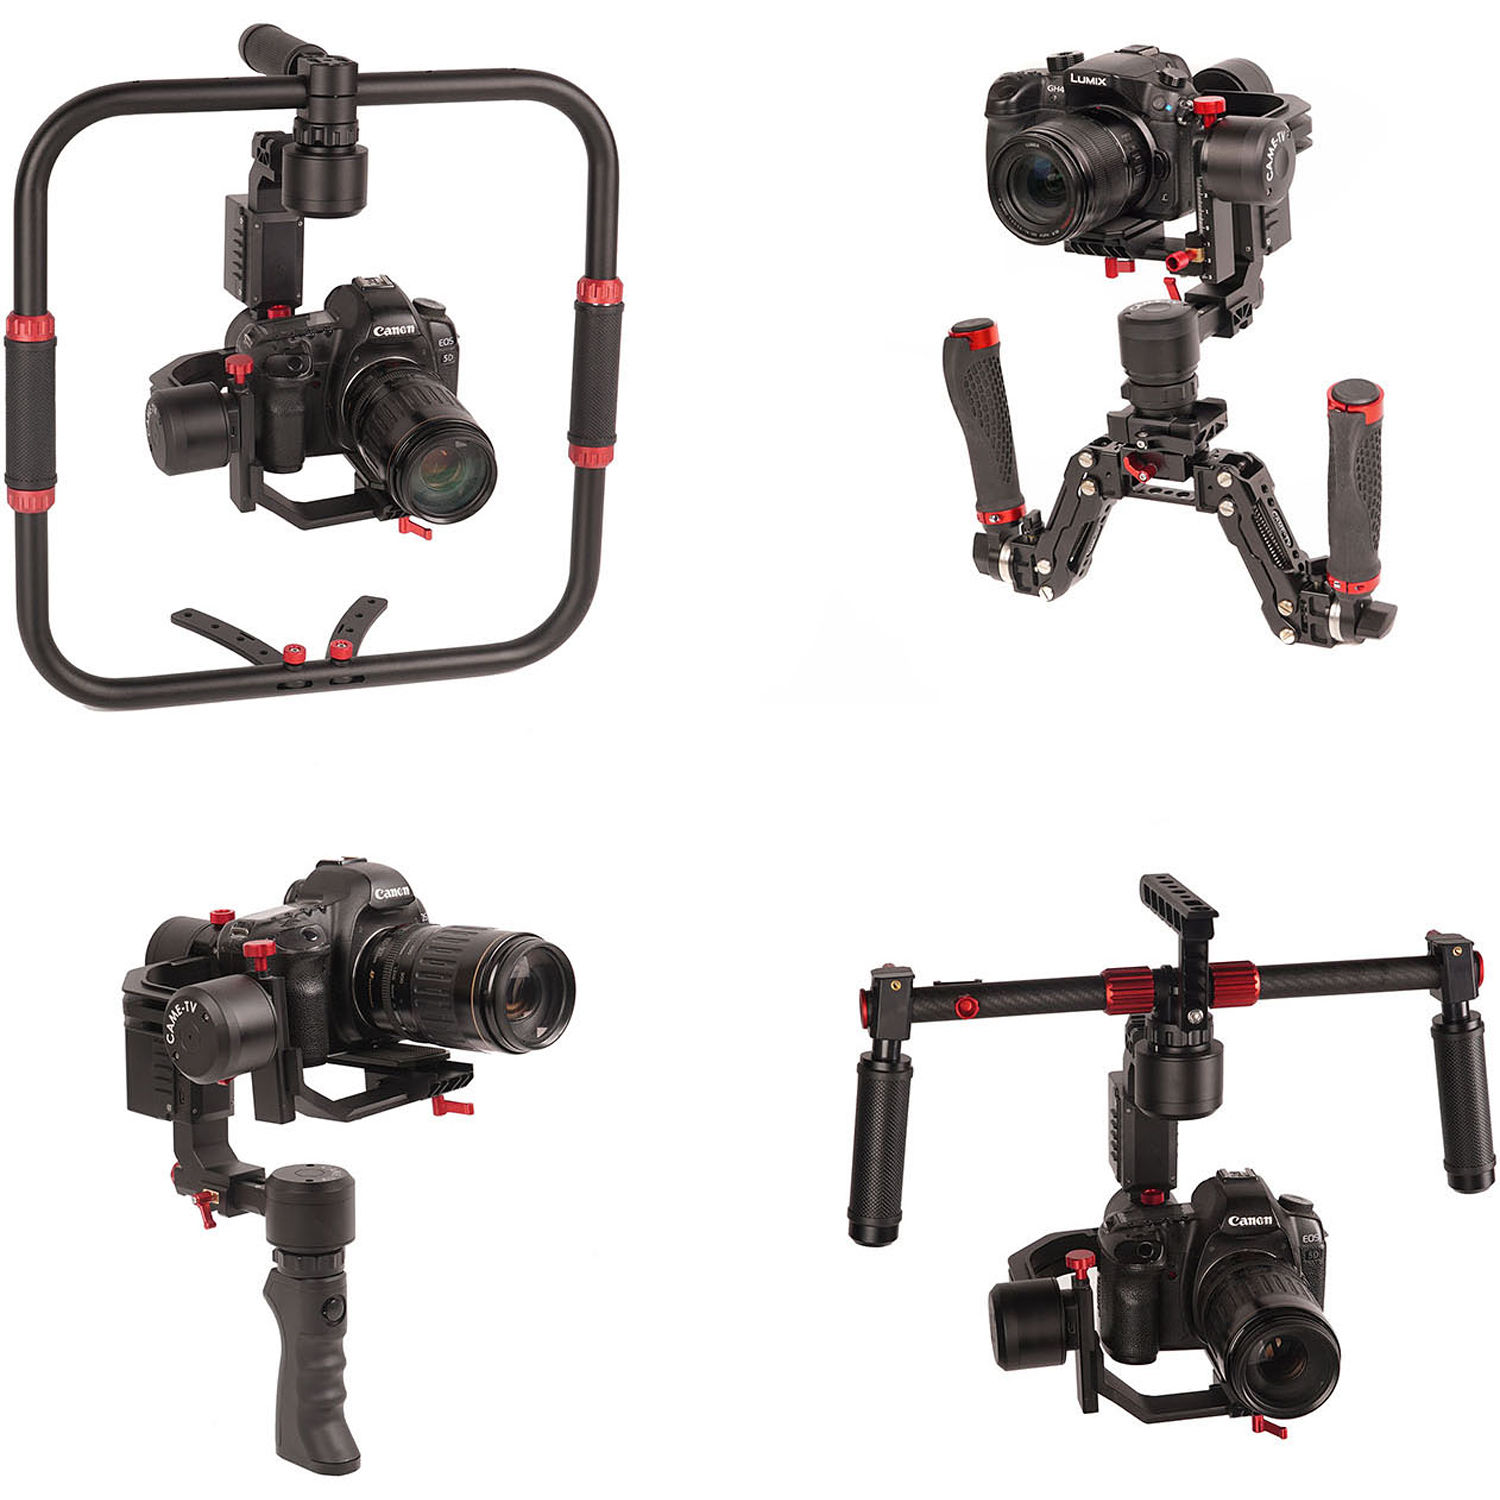 CAME-TV Prophet2 4-in-1 Handheld Gimbal Stabilizer with Detachable Head 6 6  Pound Payload